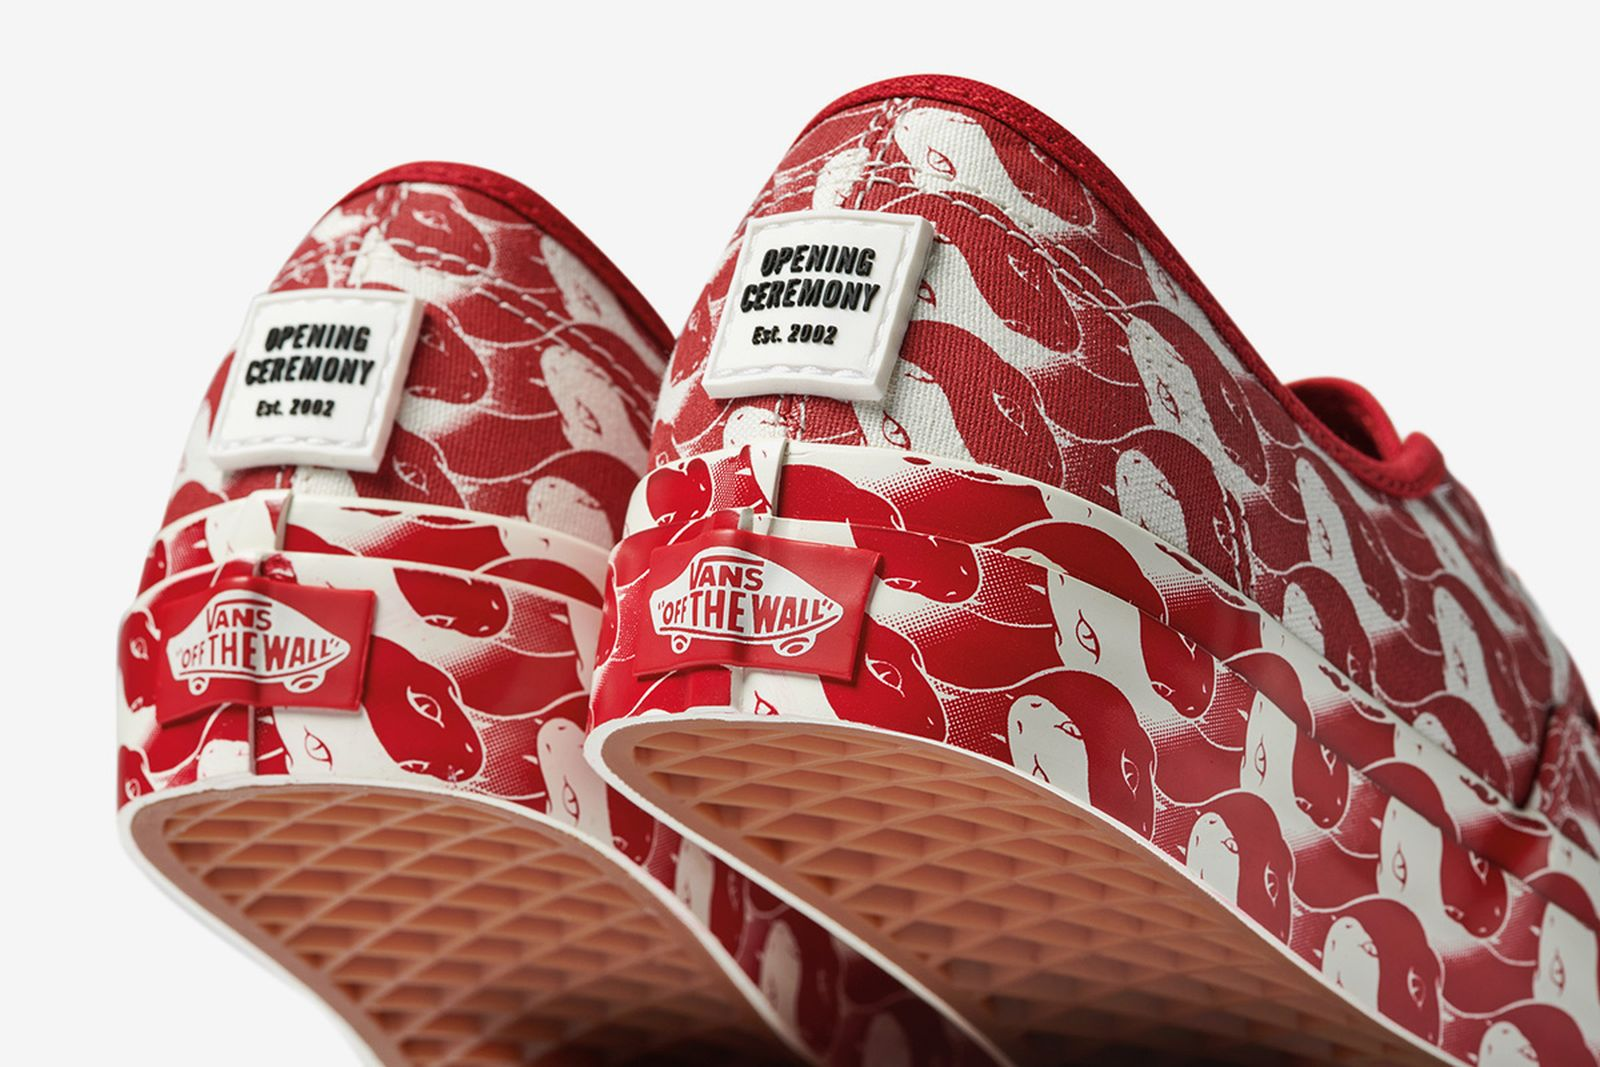 opening-ceremony-vans-authentic-qlt-release-info-1-08